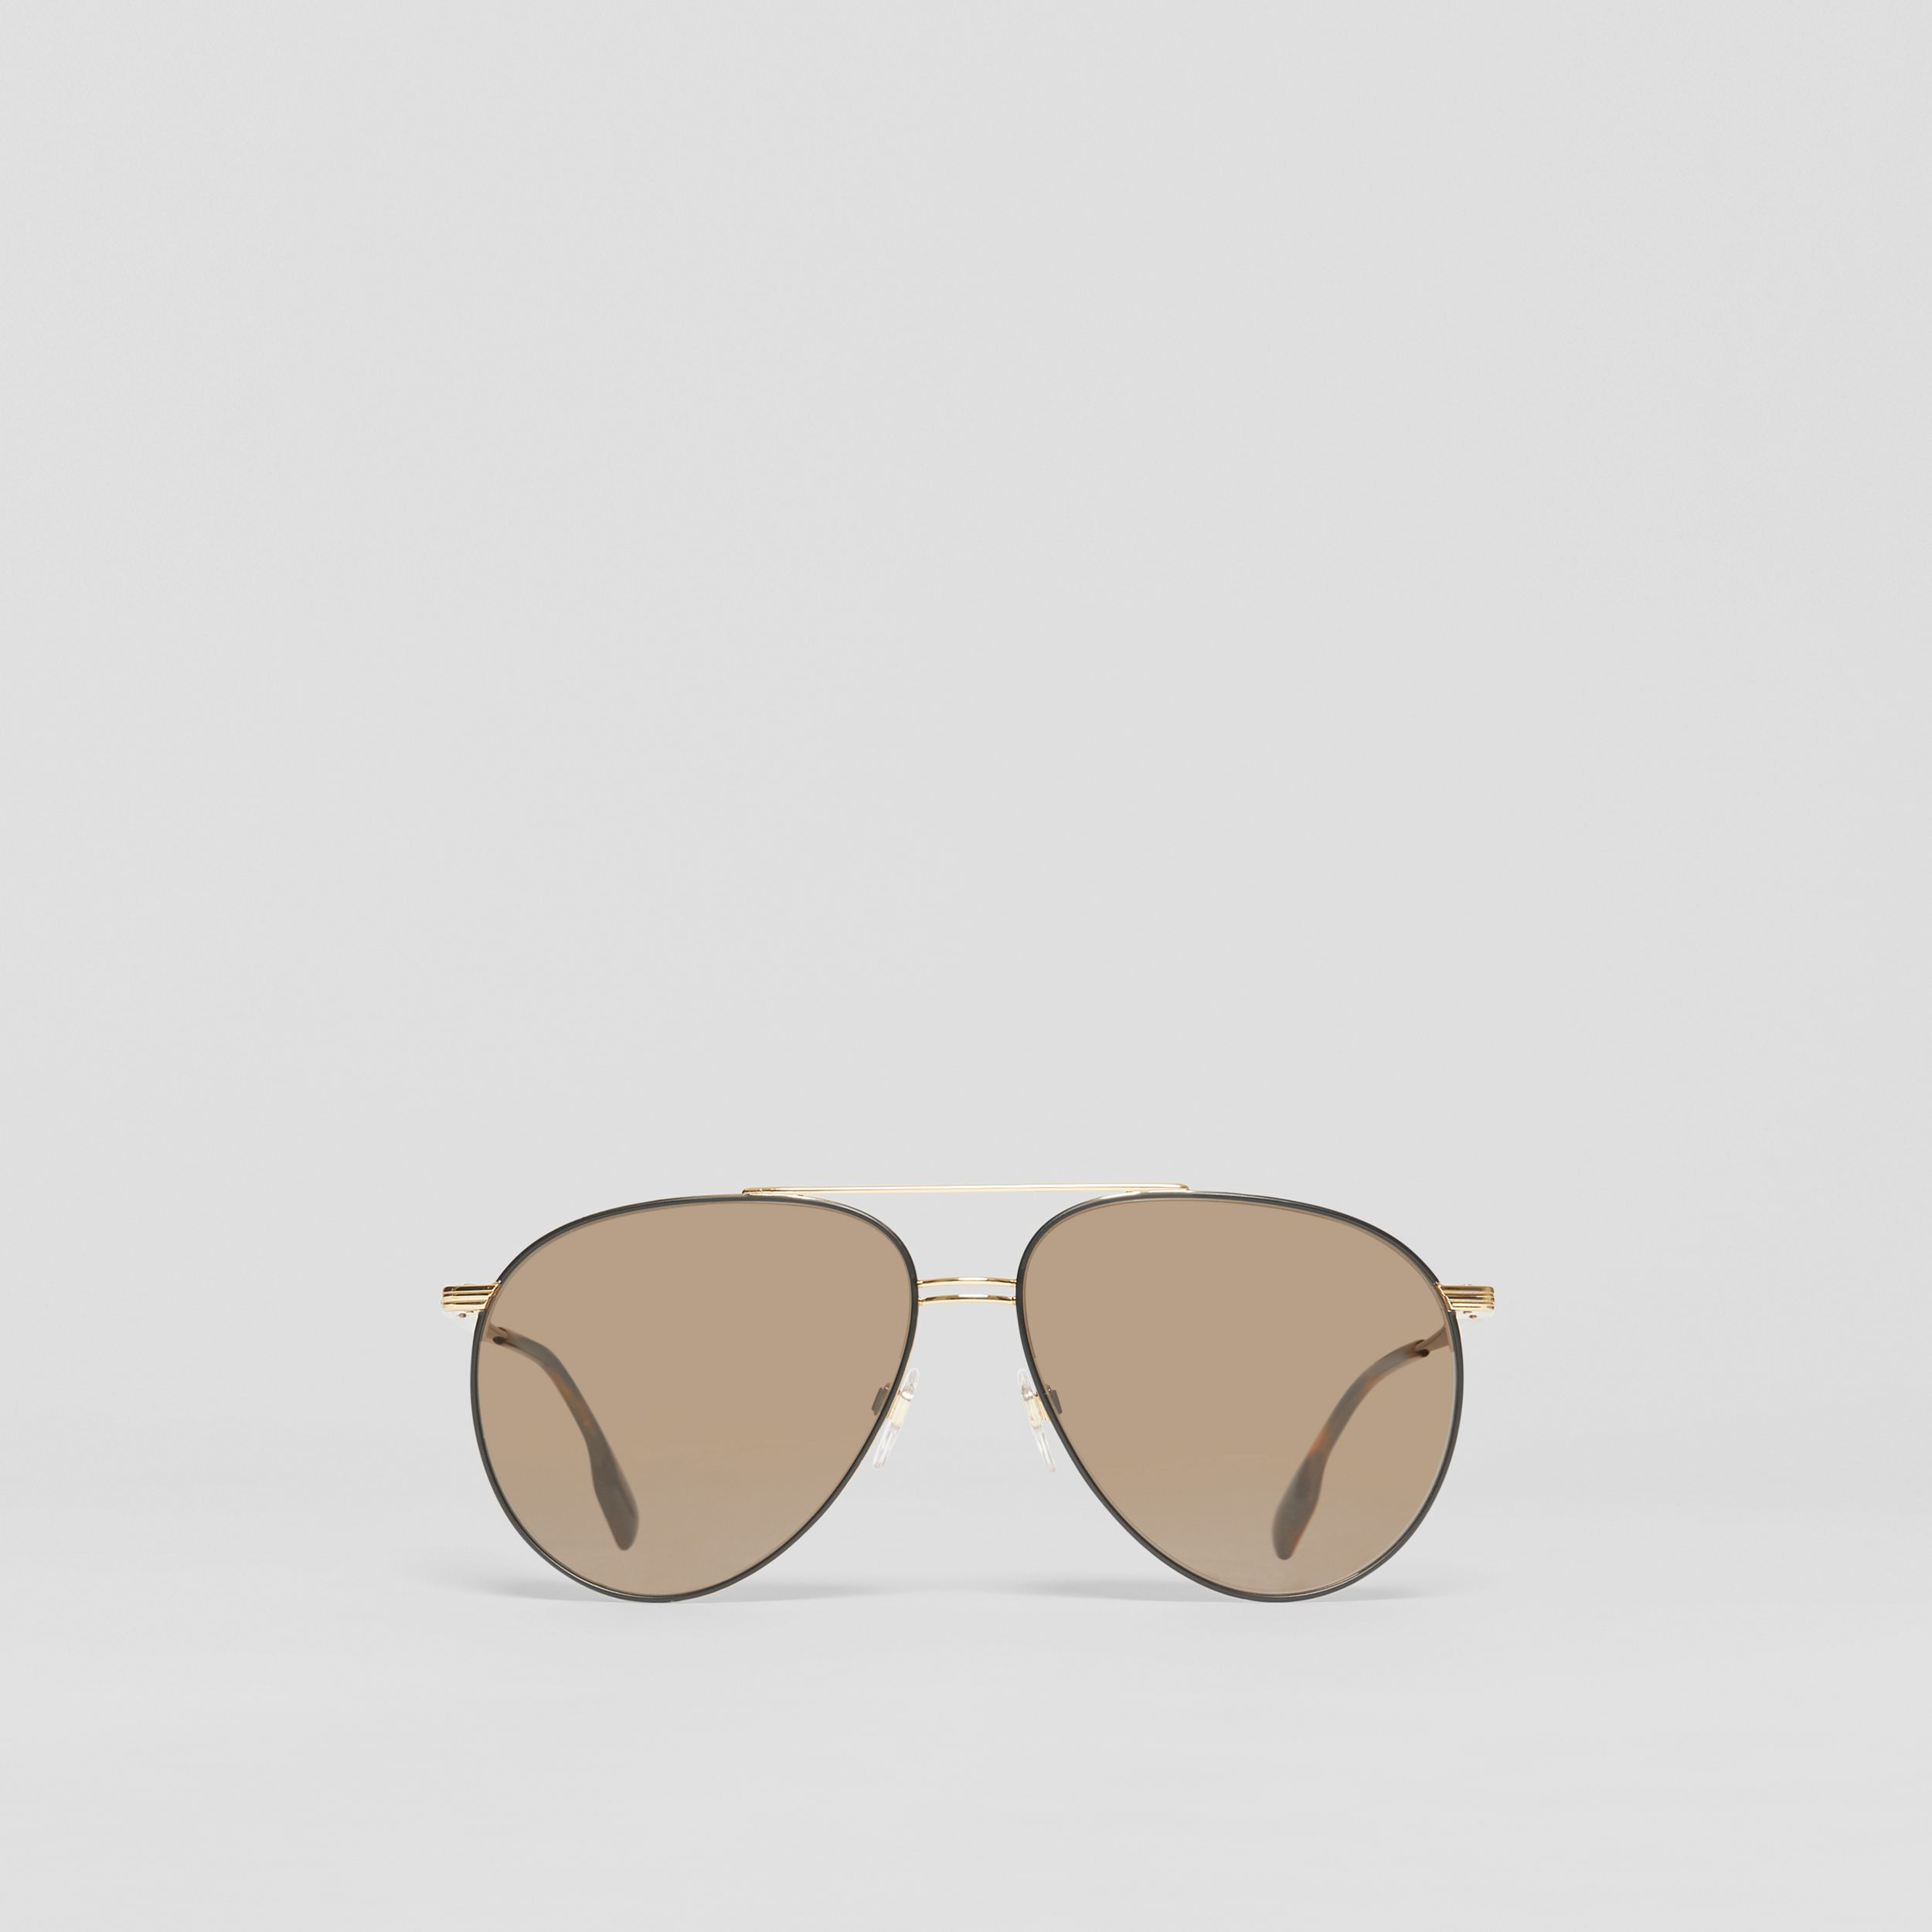 Top Bar Detail Pilot Sunglasses in Gold - Men | Burberry United Kingdom - 1